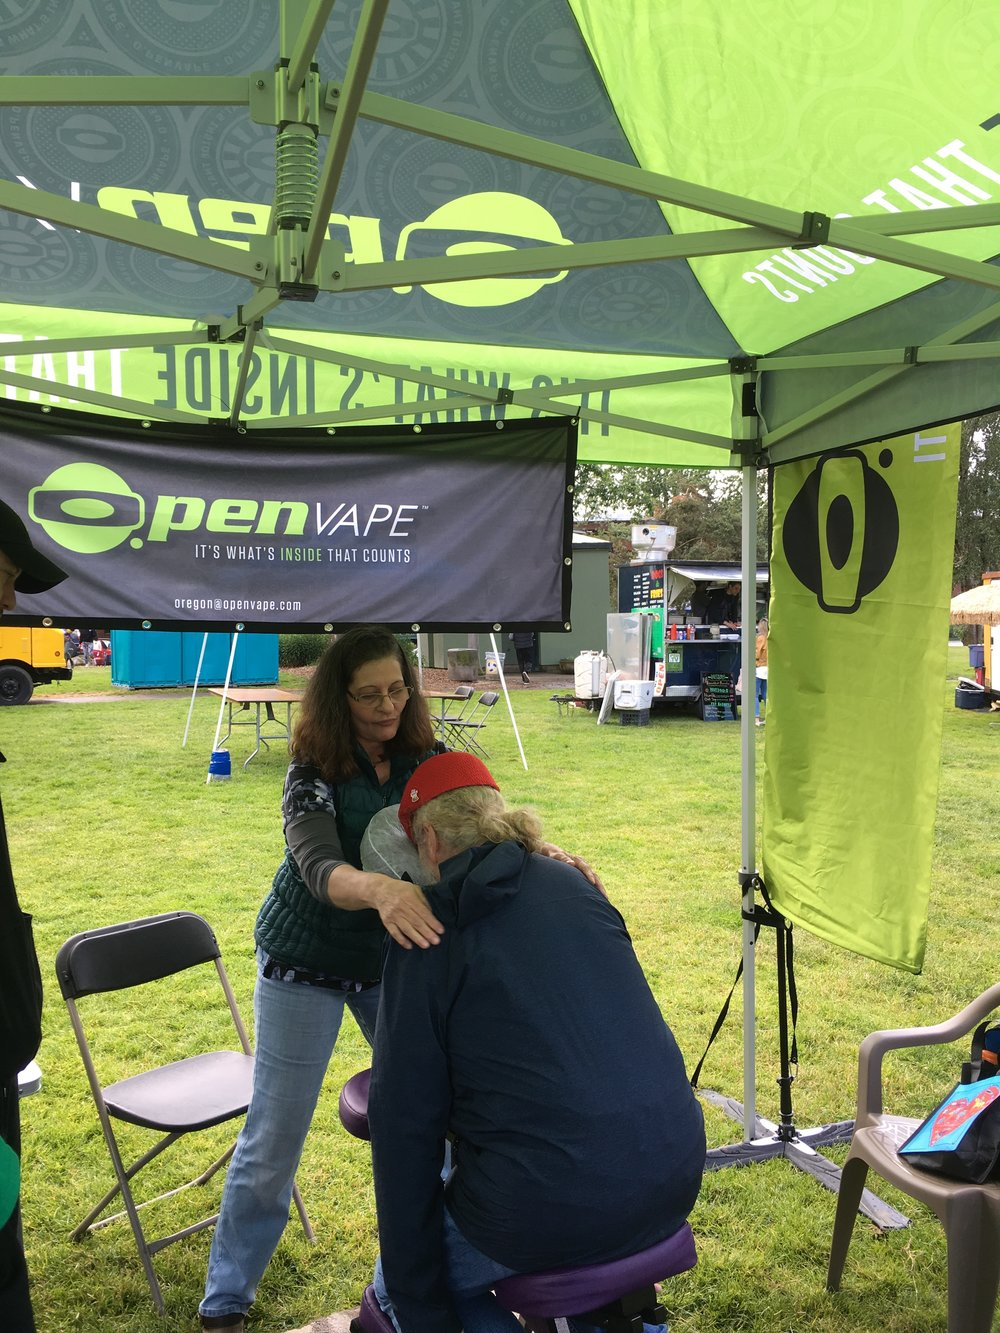 O.pen Vape had a massuese on hand too! Just another day of health and wellness at The 420 Games!